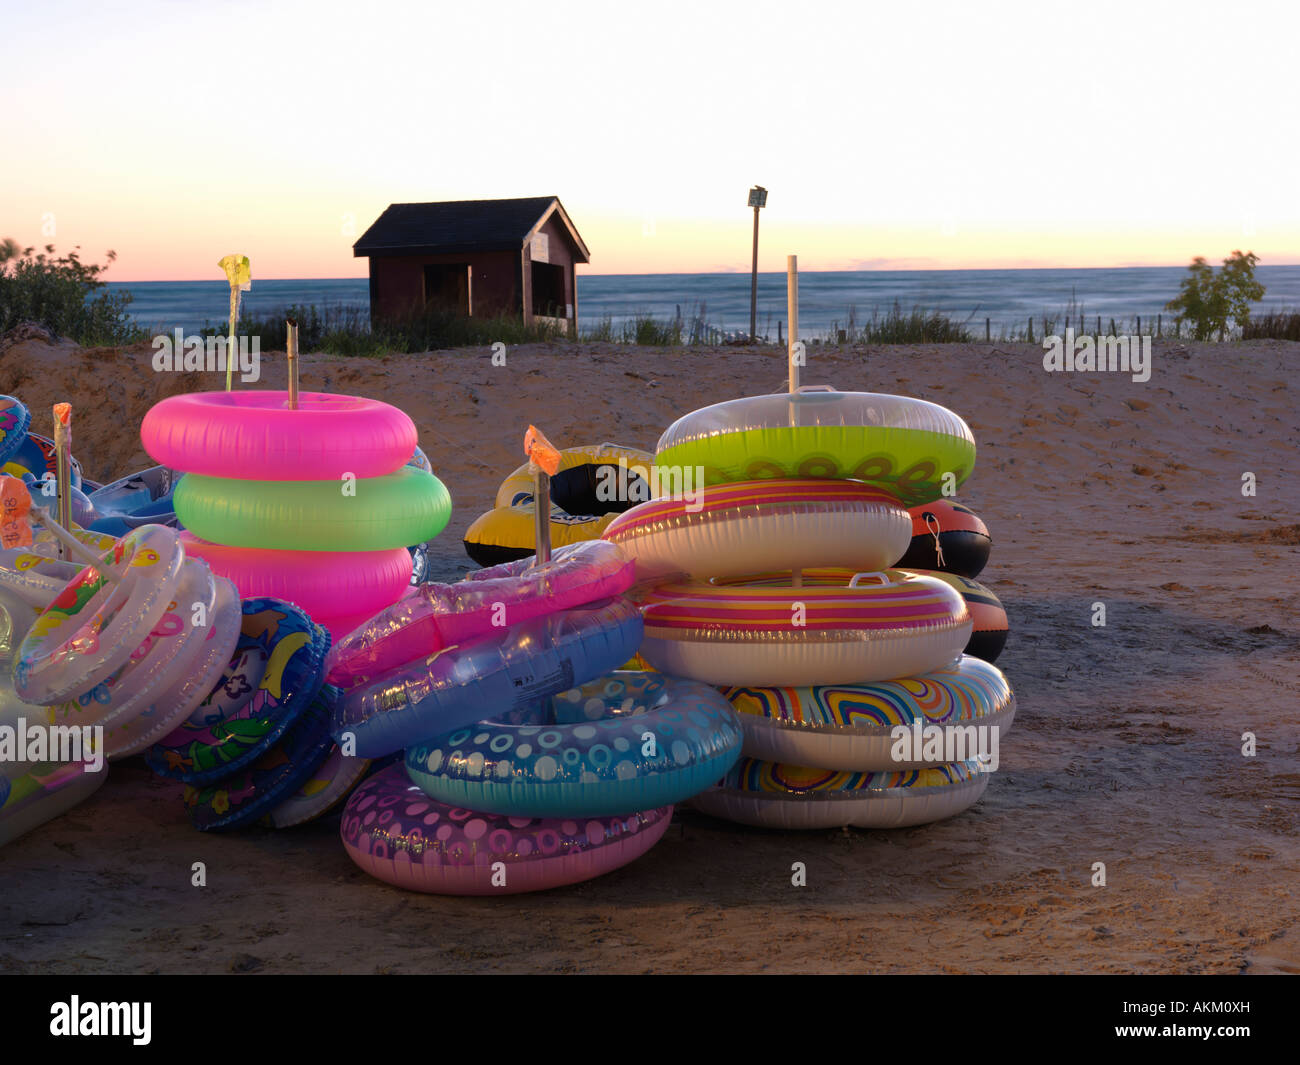 Canada Ontario Sauble Beach beach floatation devices at a beach stand illuminated at dusk with beach in background - Stock Image